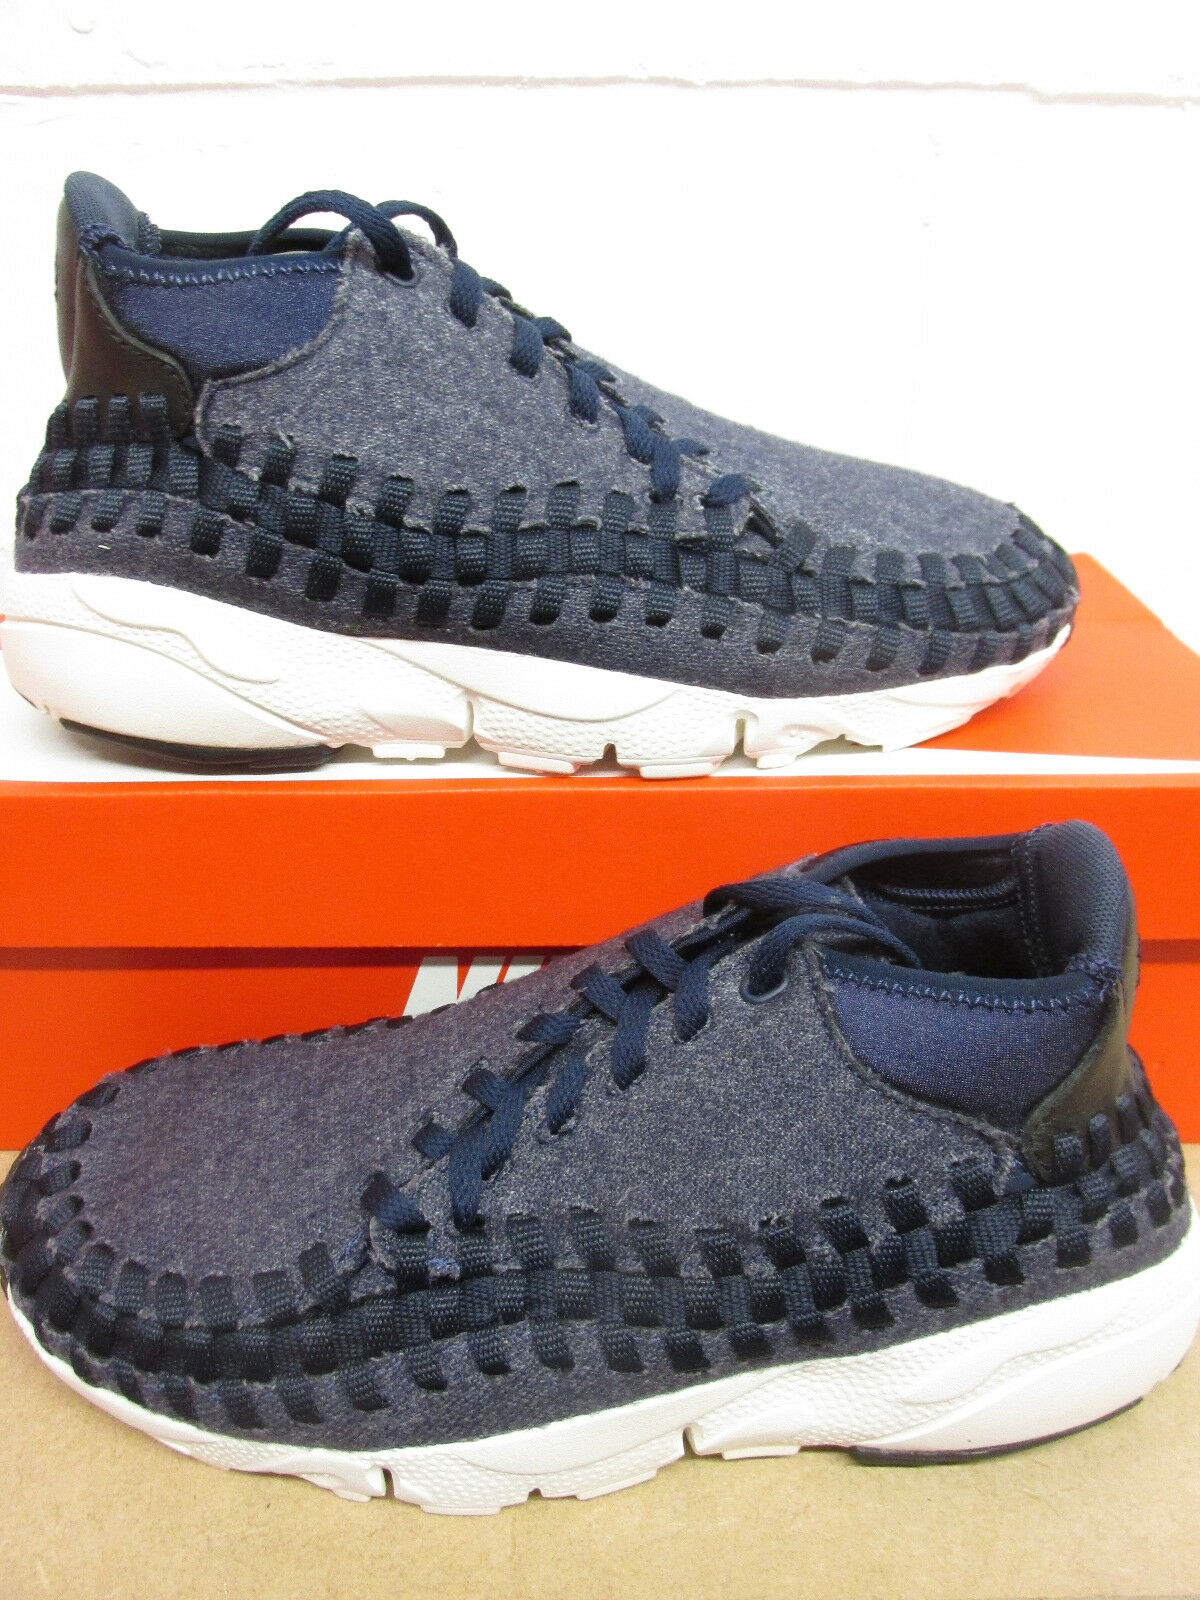 Nike Air Footscape Woven Chukka SE homme Trainers 857874 400 Sneakers chaussures